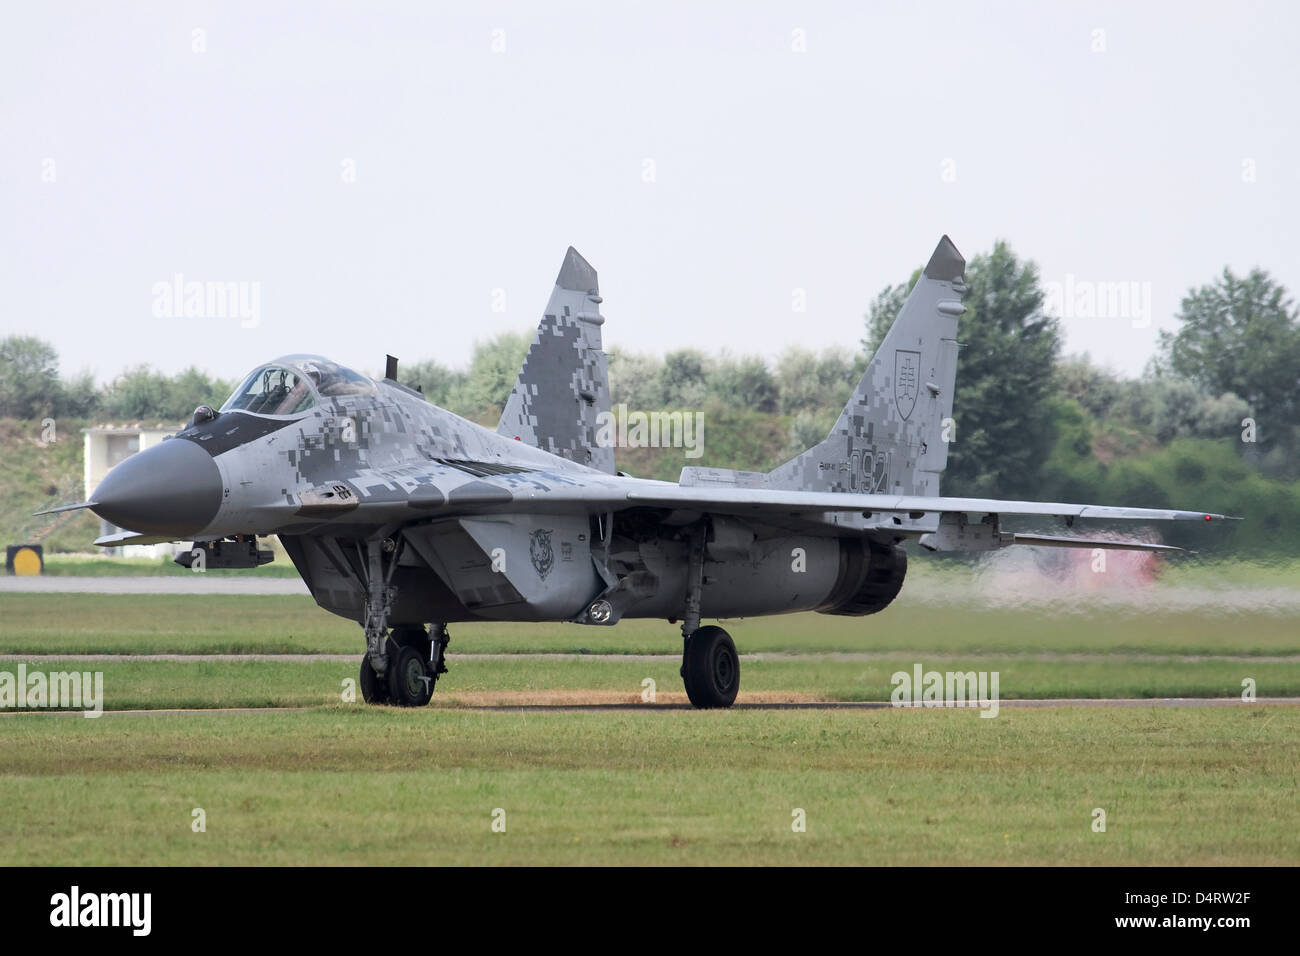 Slovak Air Force MiG-29AS aircraft in digital camouflage, Kecskemet, Hungary. Stock Photo